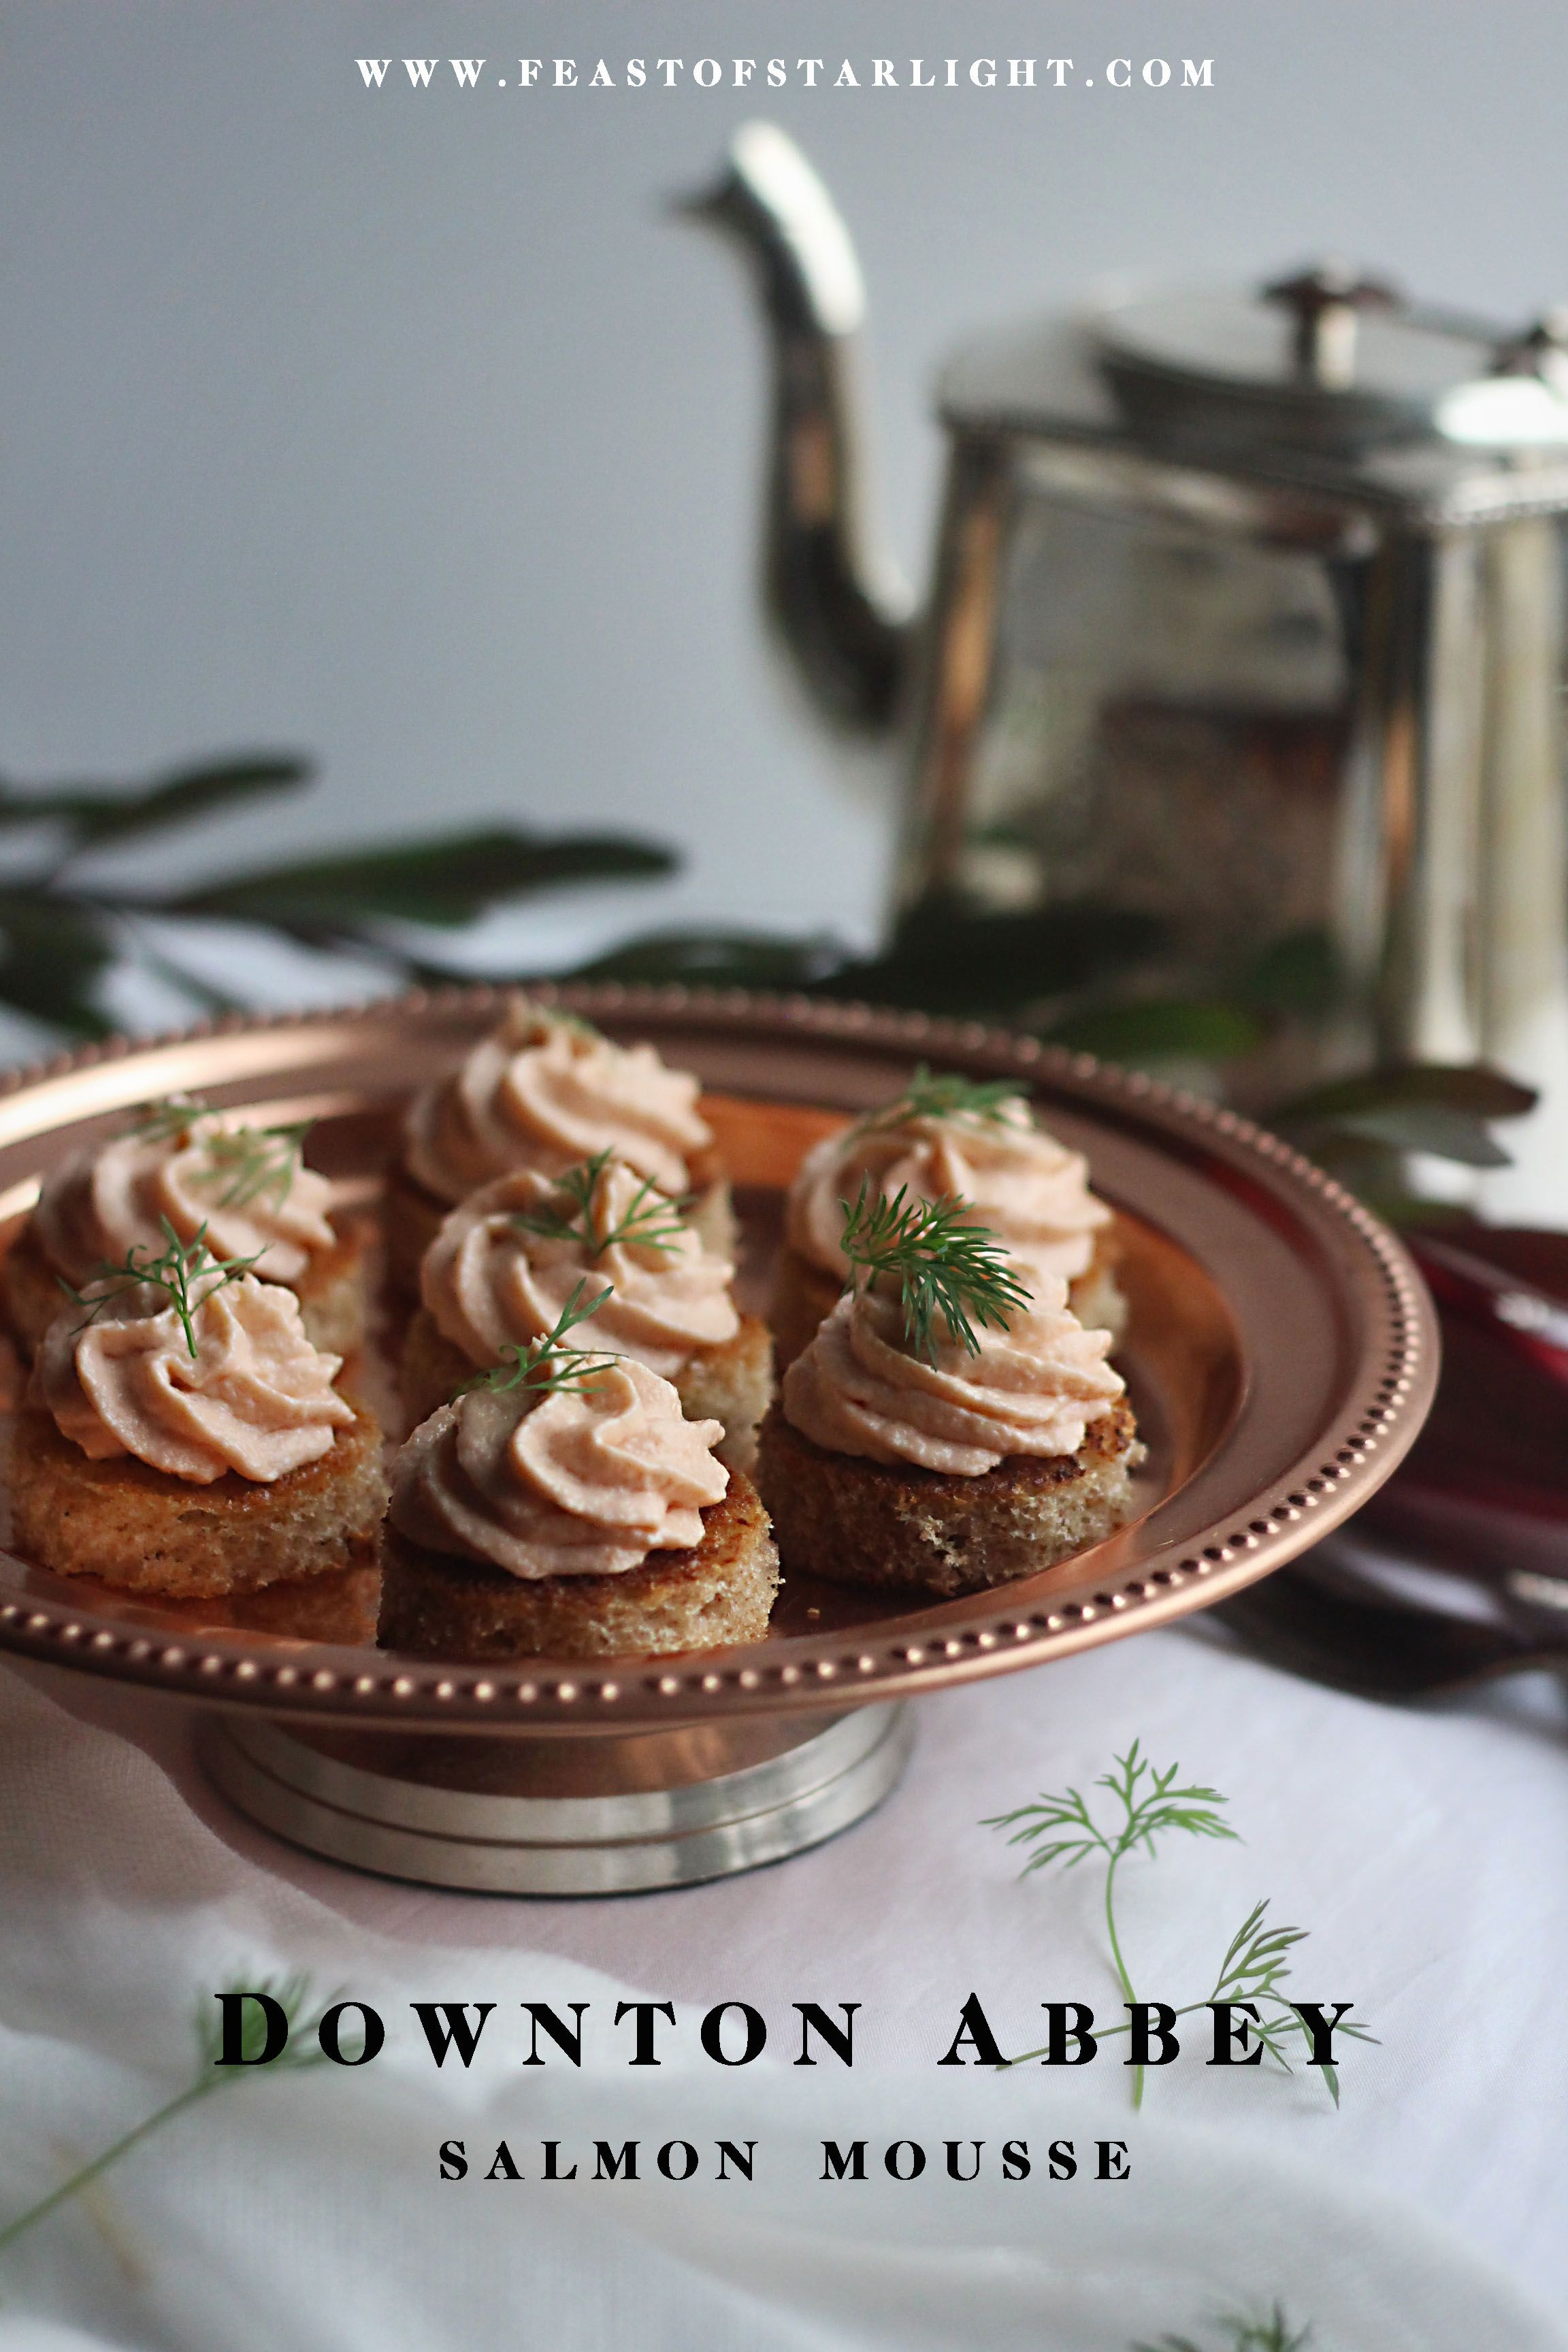 Downton Abbey Salmon Mousse Feast Of Starlight Recipe Salmon Mousse Recipes Mousse Recipes Food